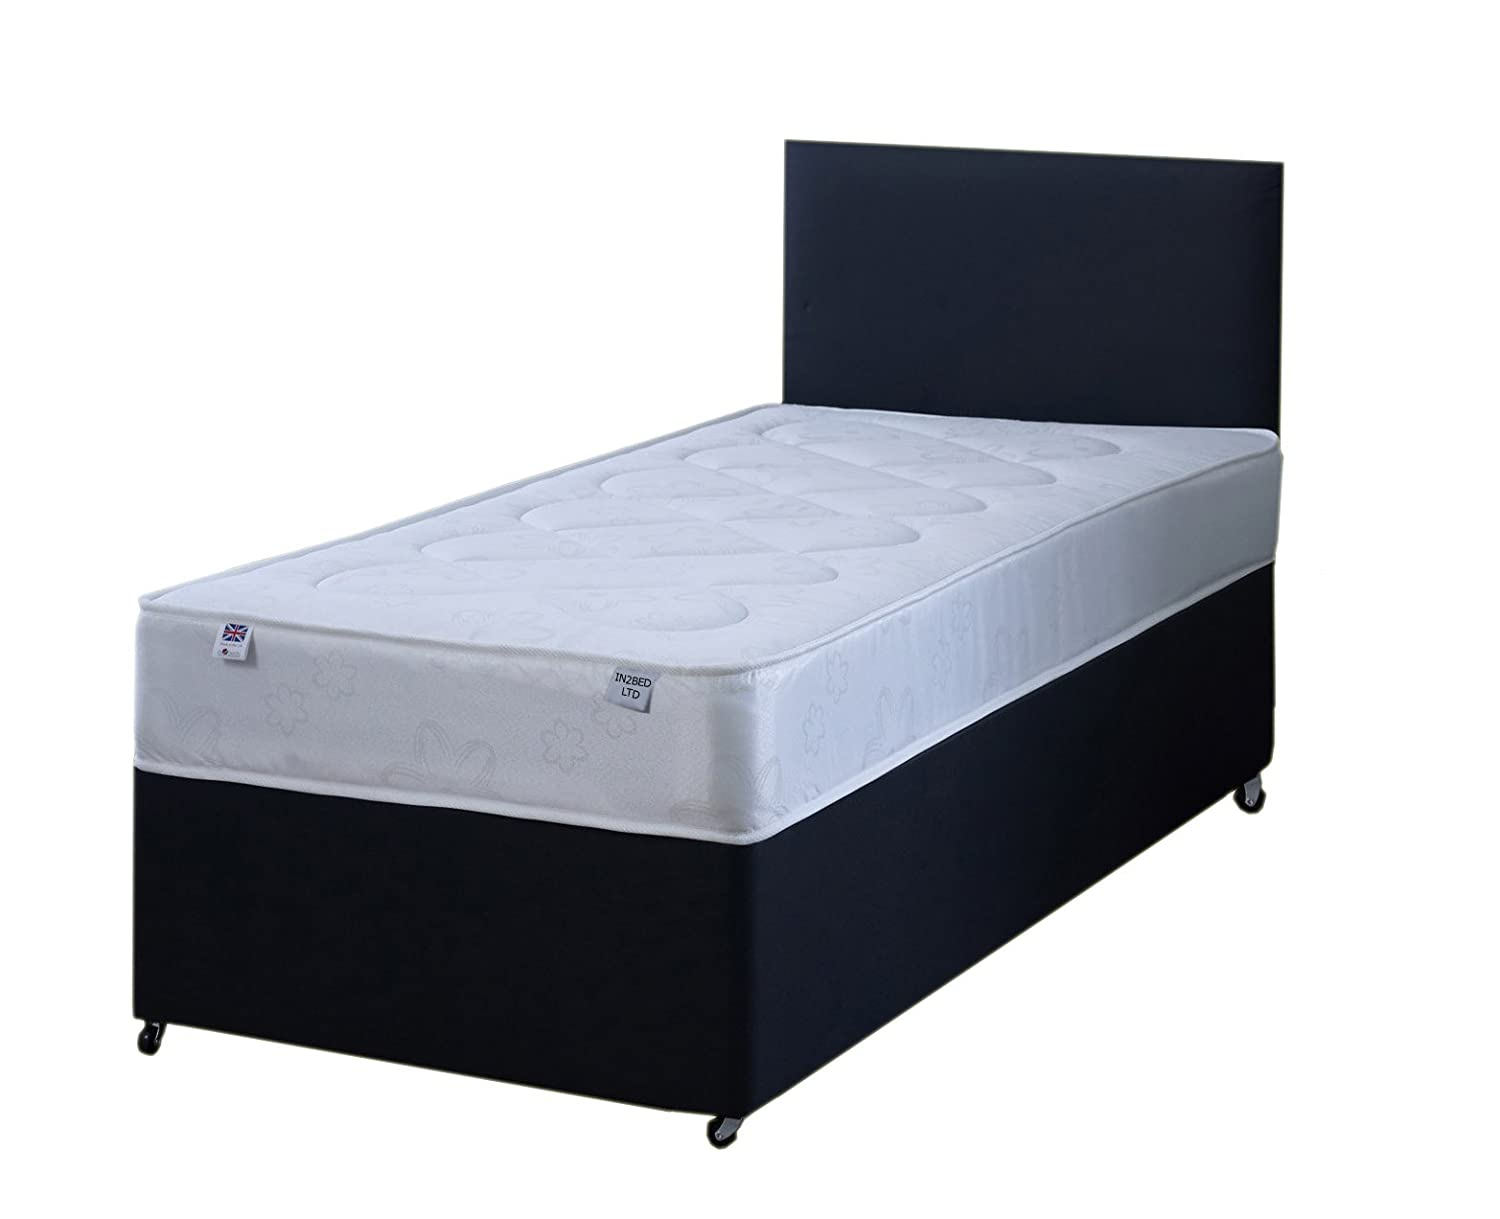 3FT Single Black Fabric Divan Bed Set Including Deep Quilt Mattress And Headboard In2Bed LTD